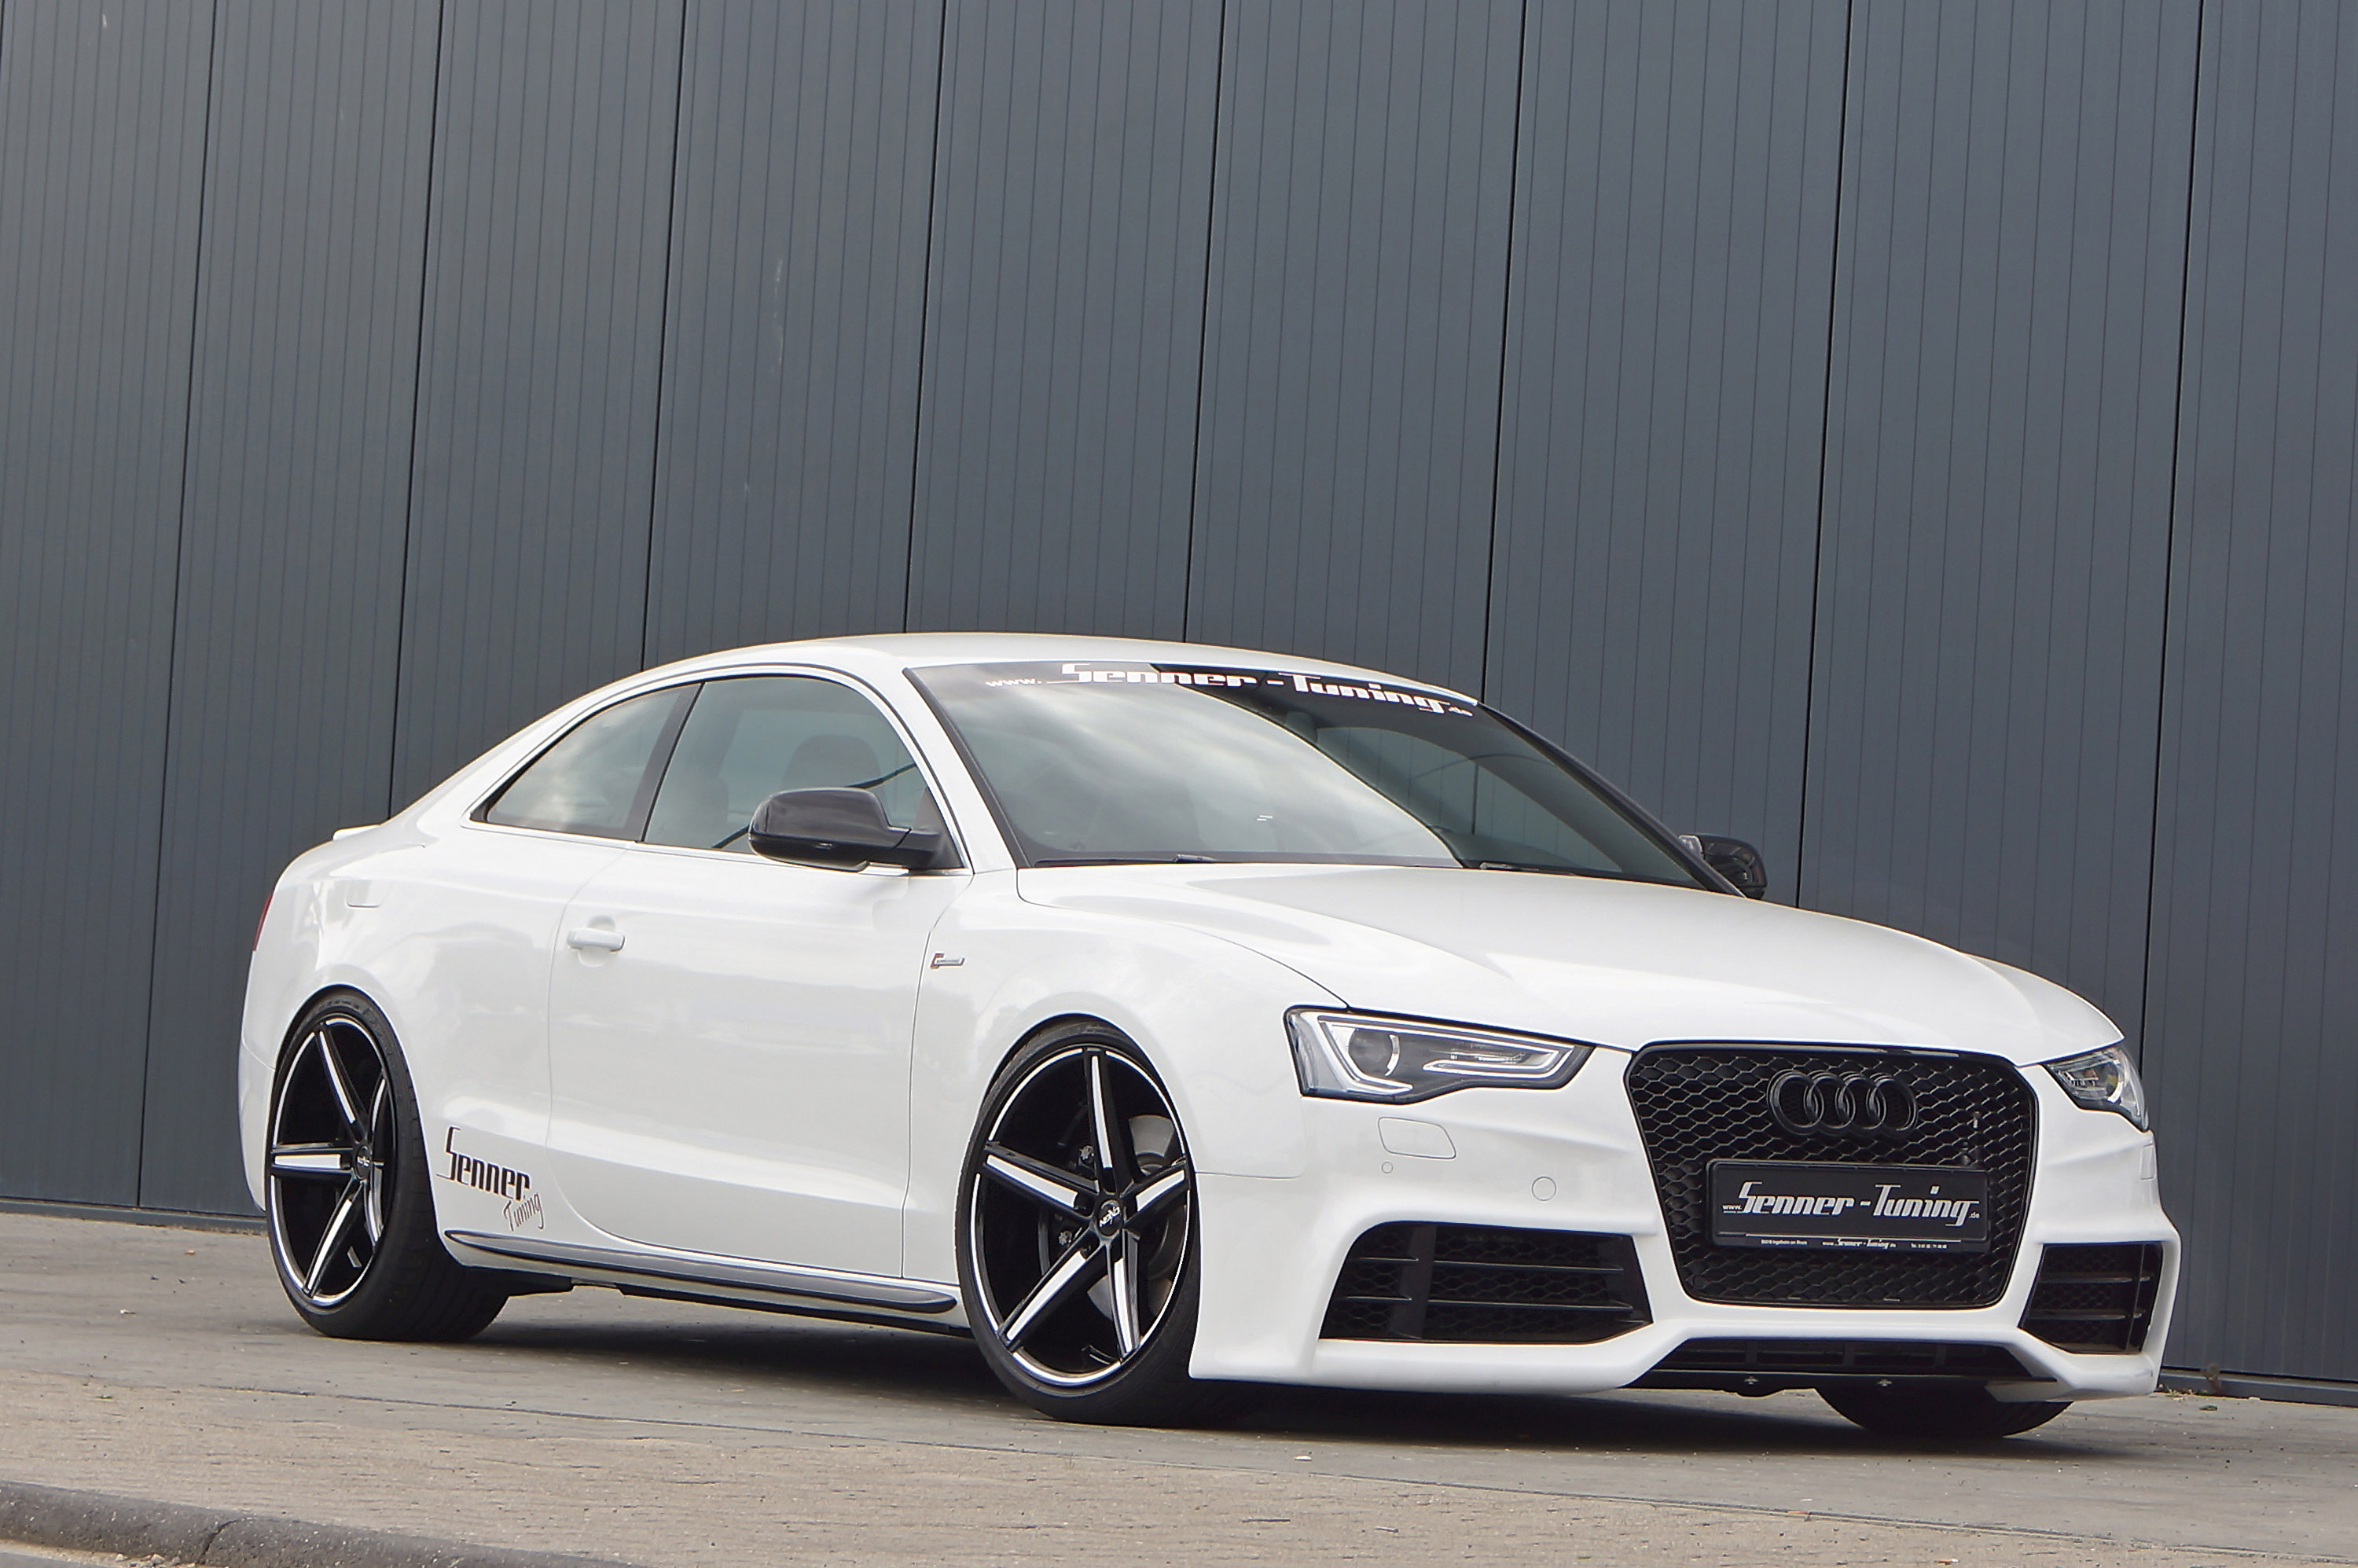 Senner Audi S5 Coupe photo #1